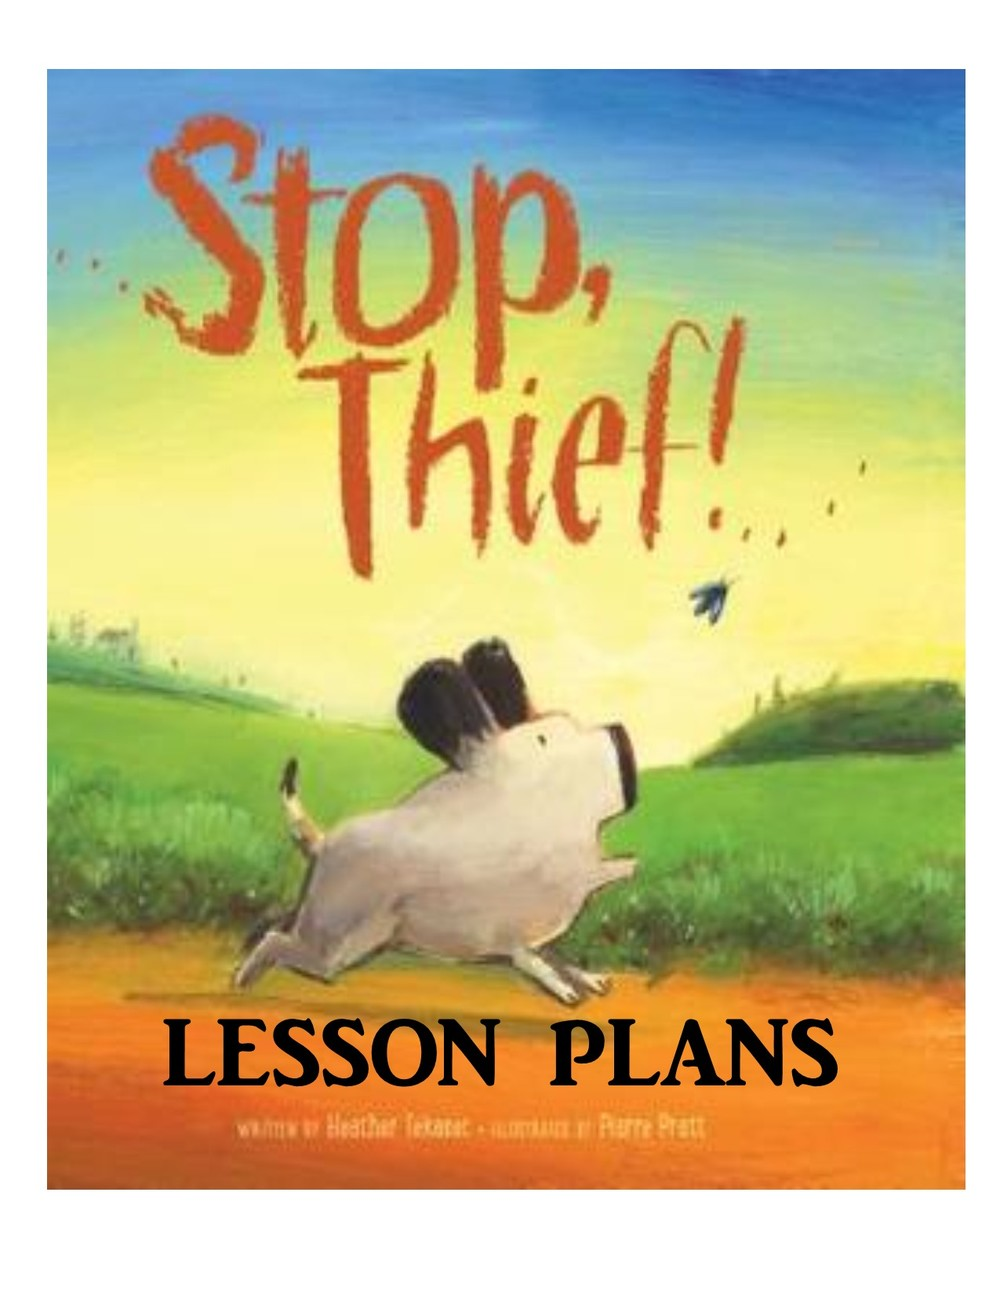 Grades Prek - 3 Lesson Plans for both books available on the LESSON PLANS page of this site.